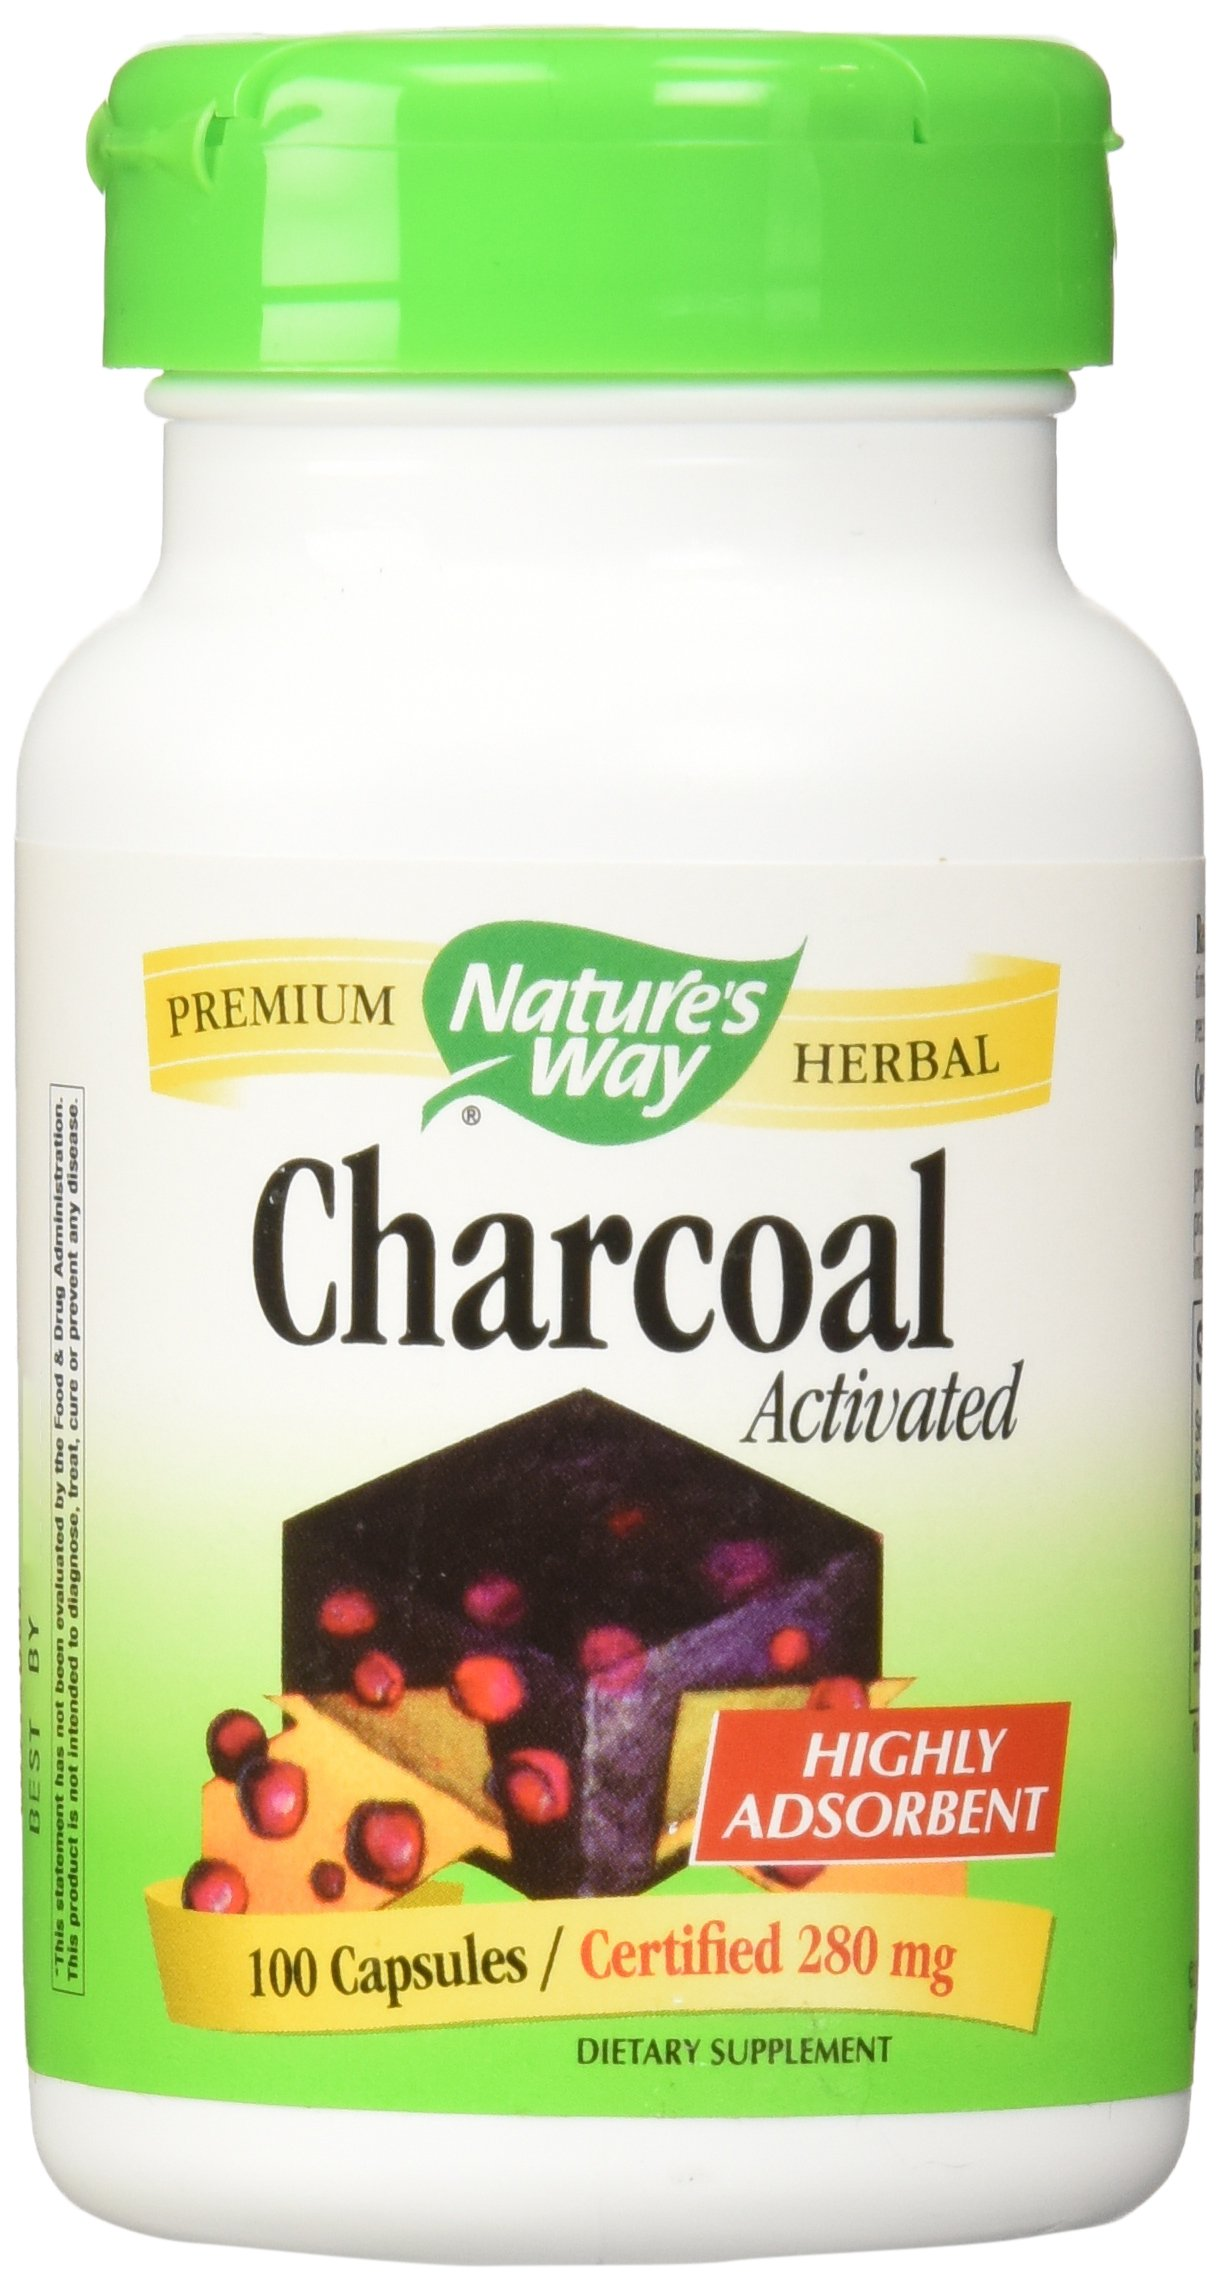 Charcoal - Activated 100 Capsules X 2